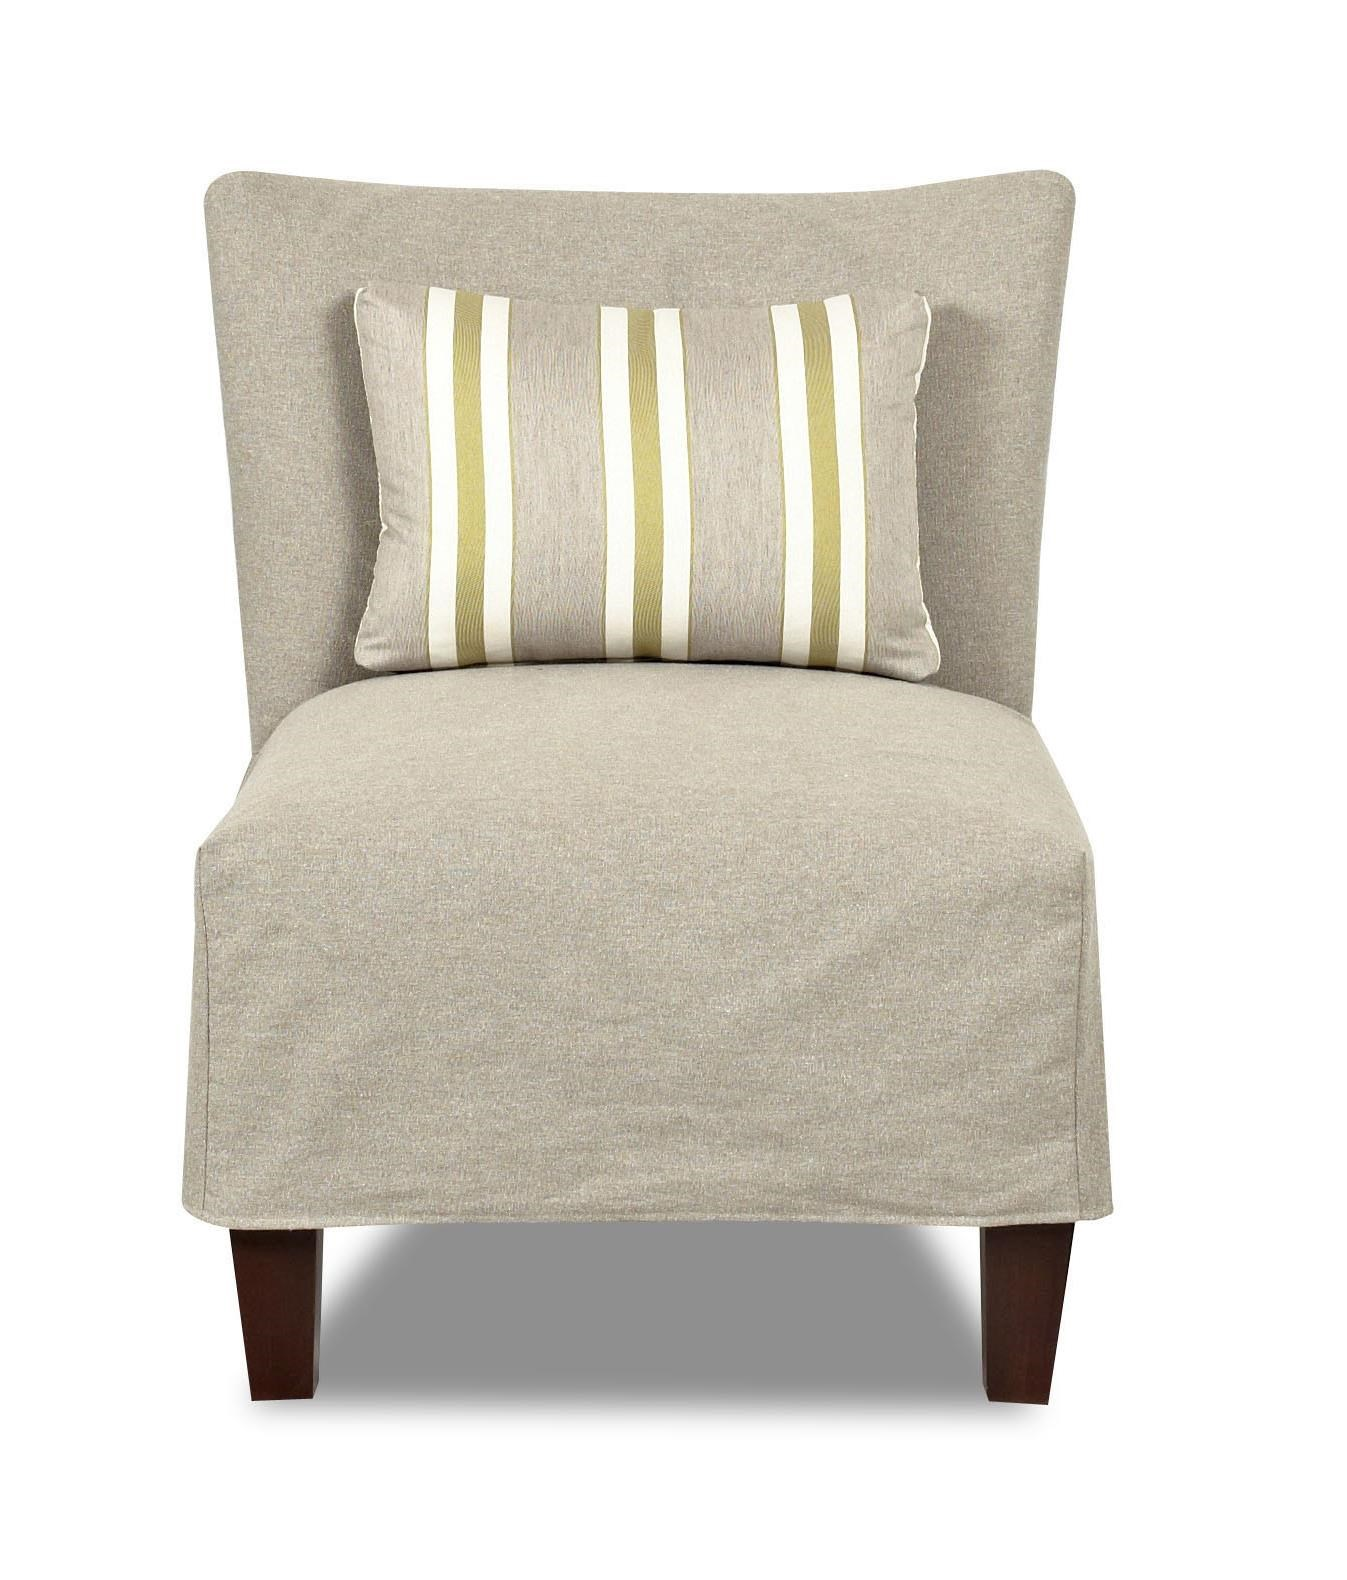 Klaussner Chairs And Accents Armless Accent Chair With